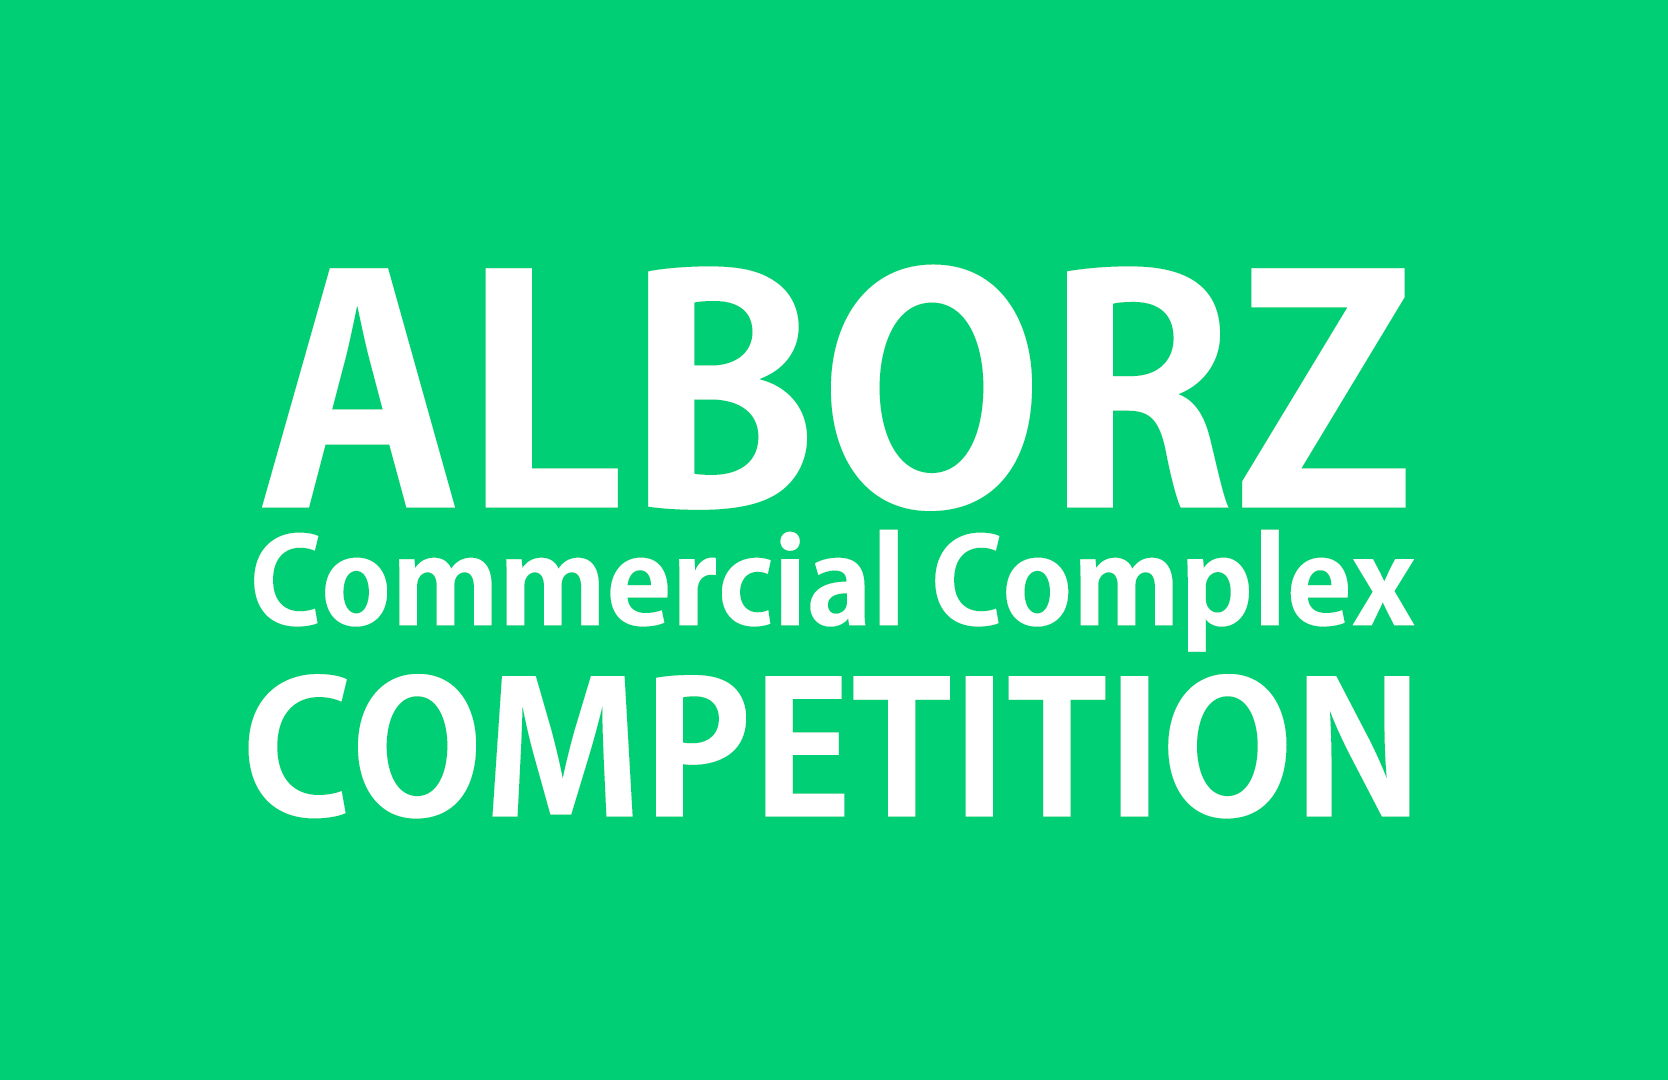 Alborz Commercial Complex Competition